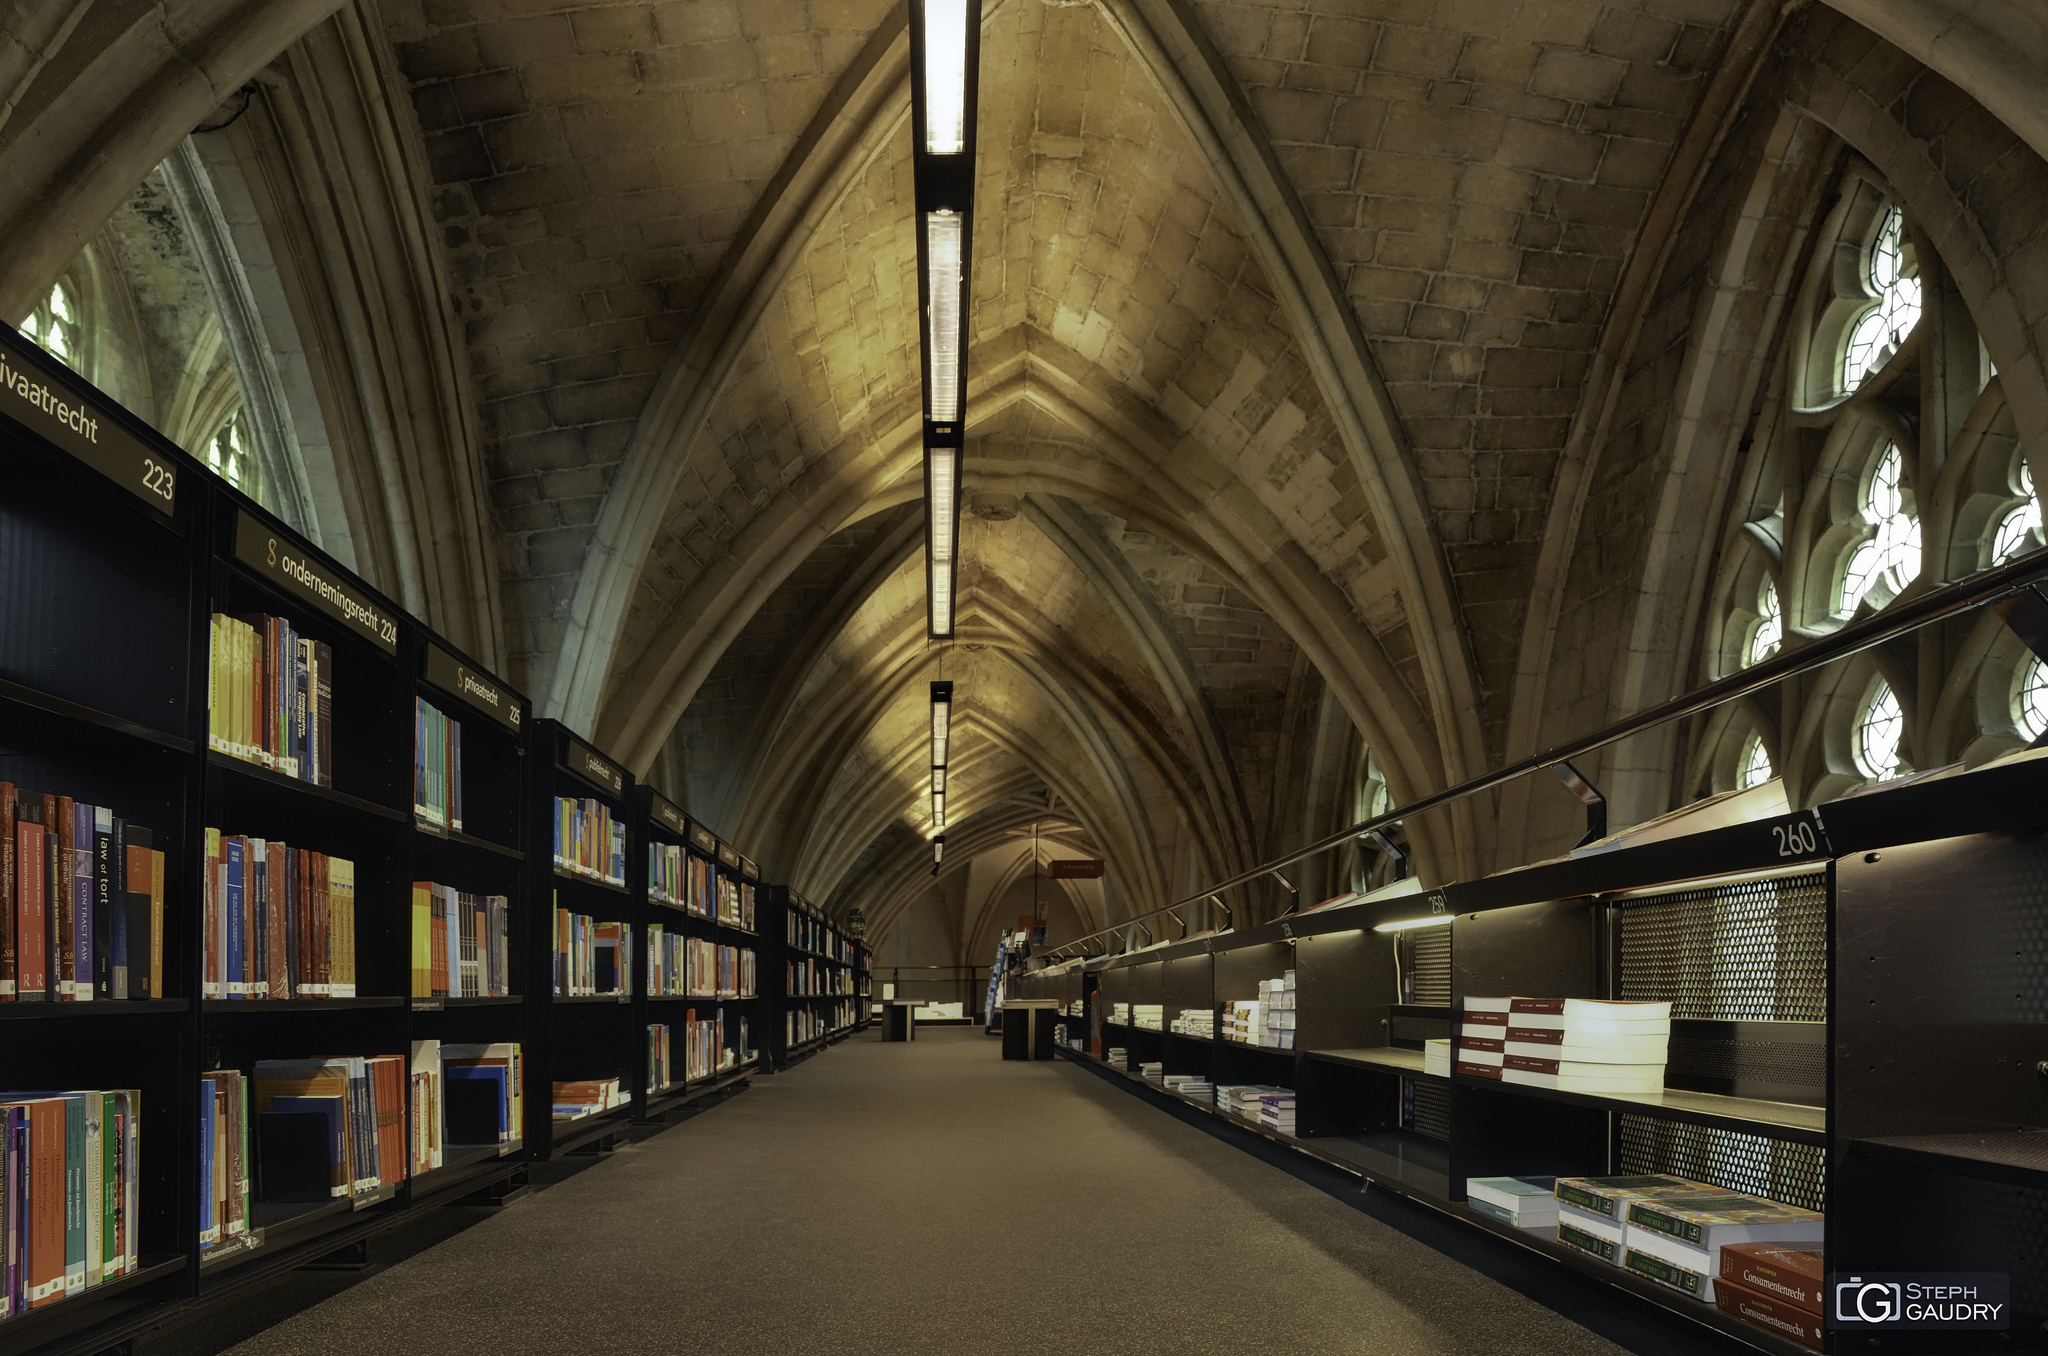 Selexyz Dominicanen: a bookshop in a former church - central [Cliquez pour lancer le diaporama]